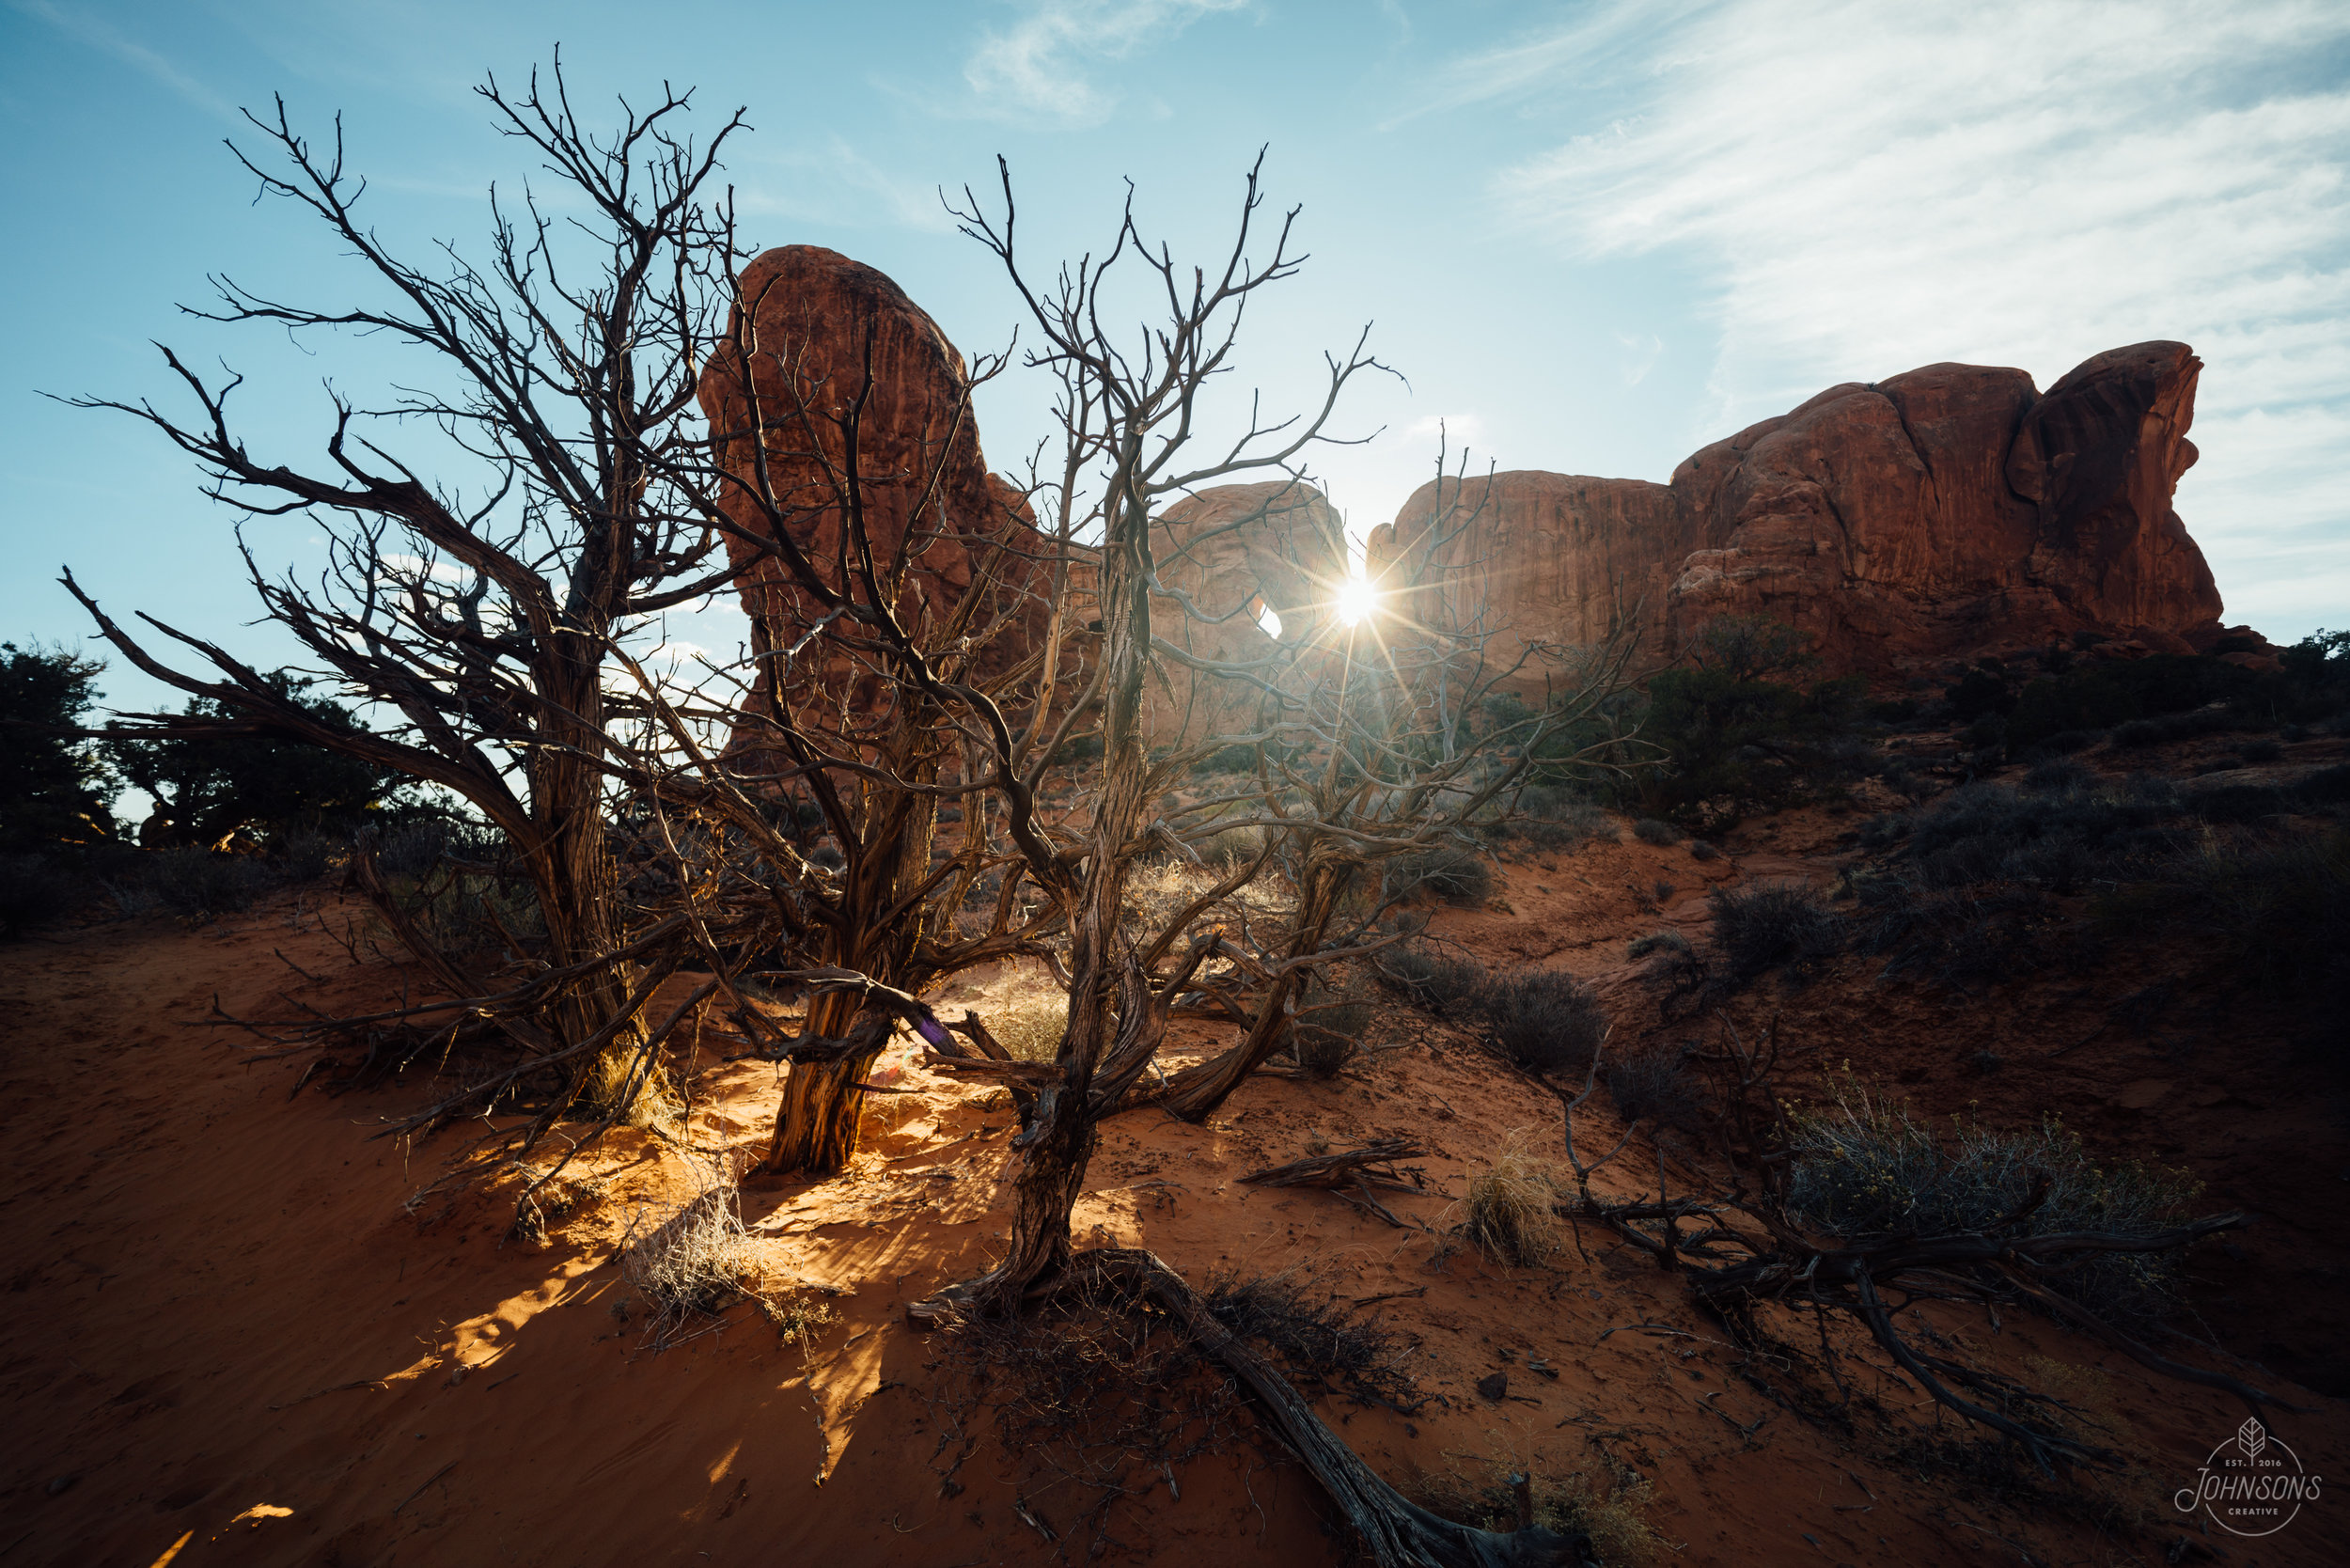 Sony a7rii |15mm 4.5 |f10 | 1/30 sec |ISO 25    This scene was on the way back from Double Arch. I am bummed I didn't set up and take a proper photo, because it's one of my favorite compositions from the trip but I took it handheld at f/4.5 so the background is a bit out of focus. Life is hard.